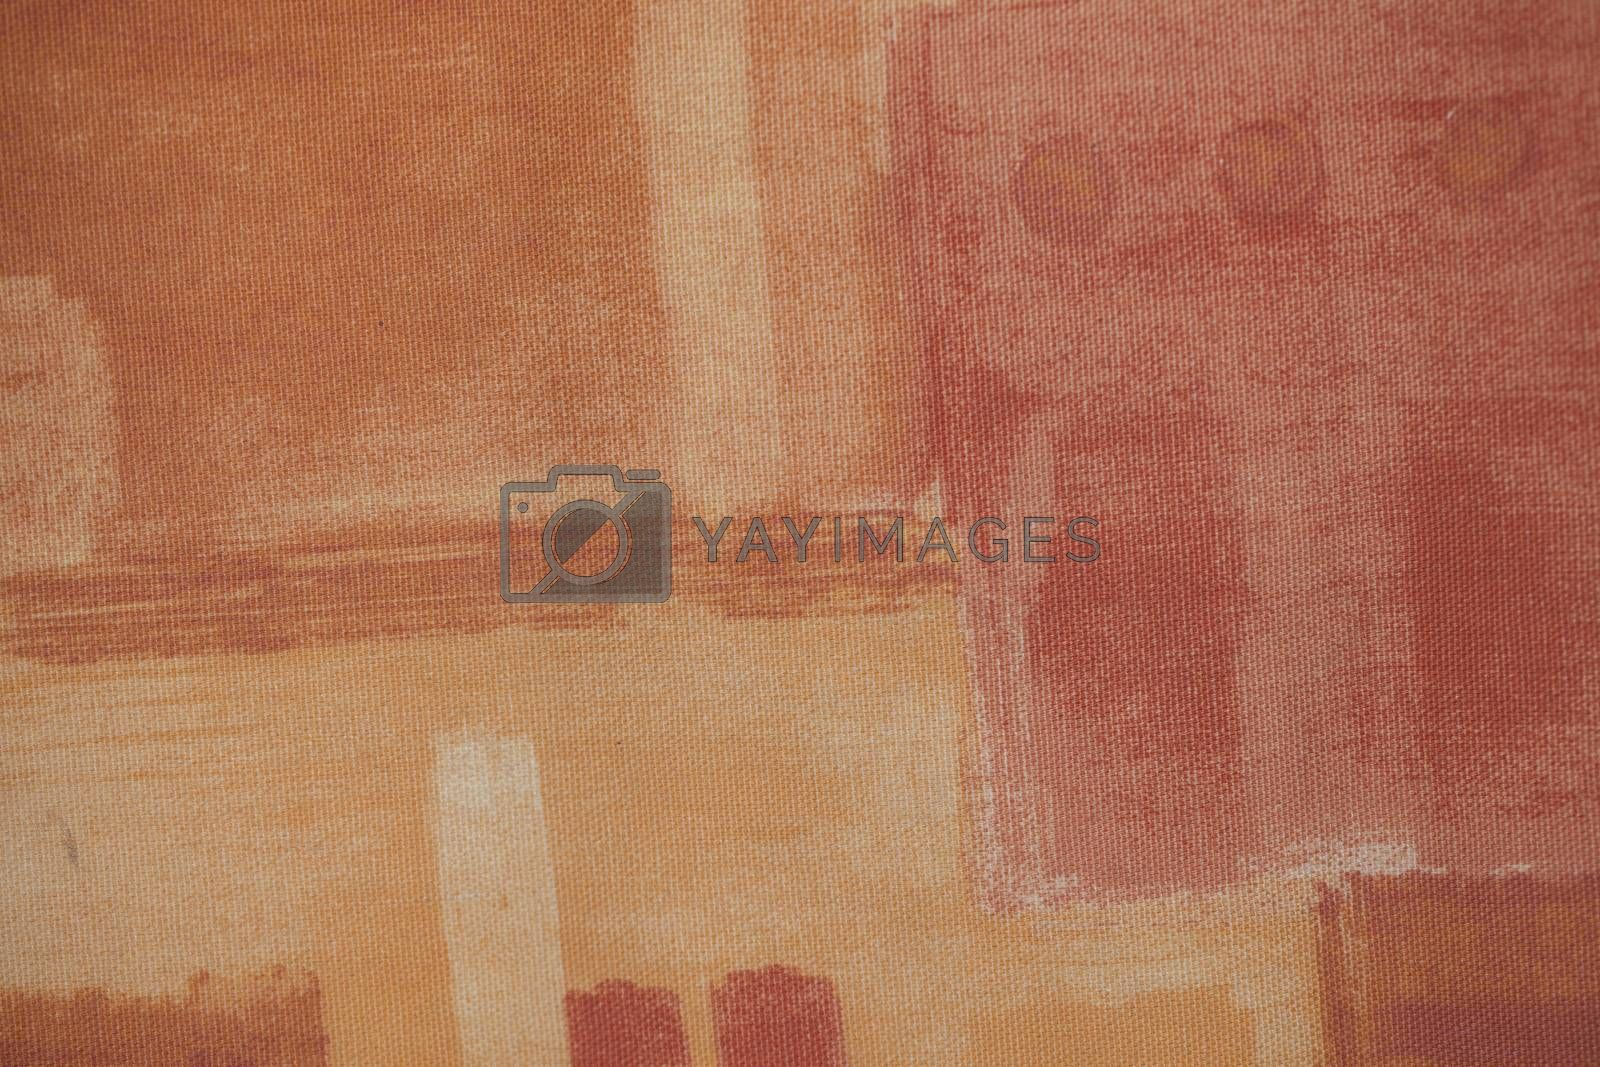 shades of red on fabric, closeup, background